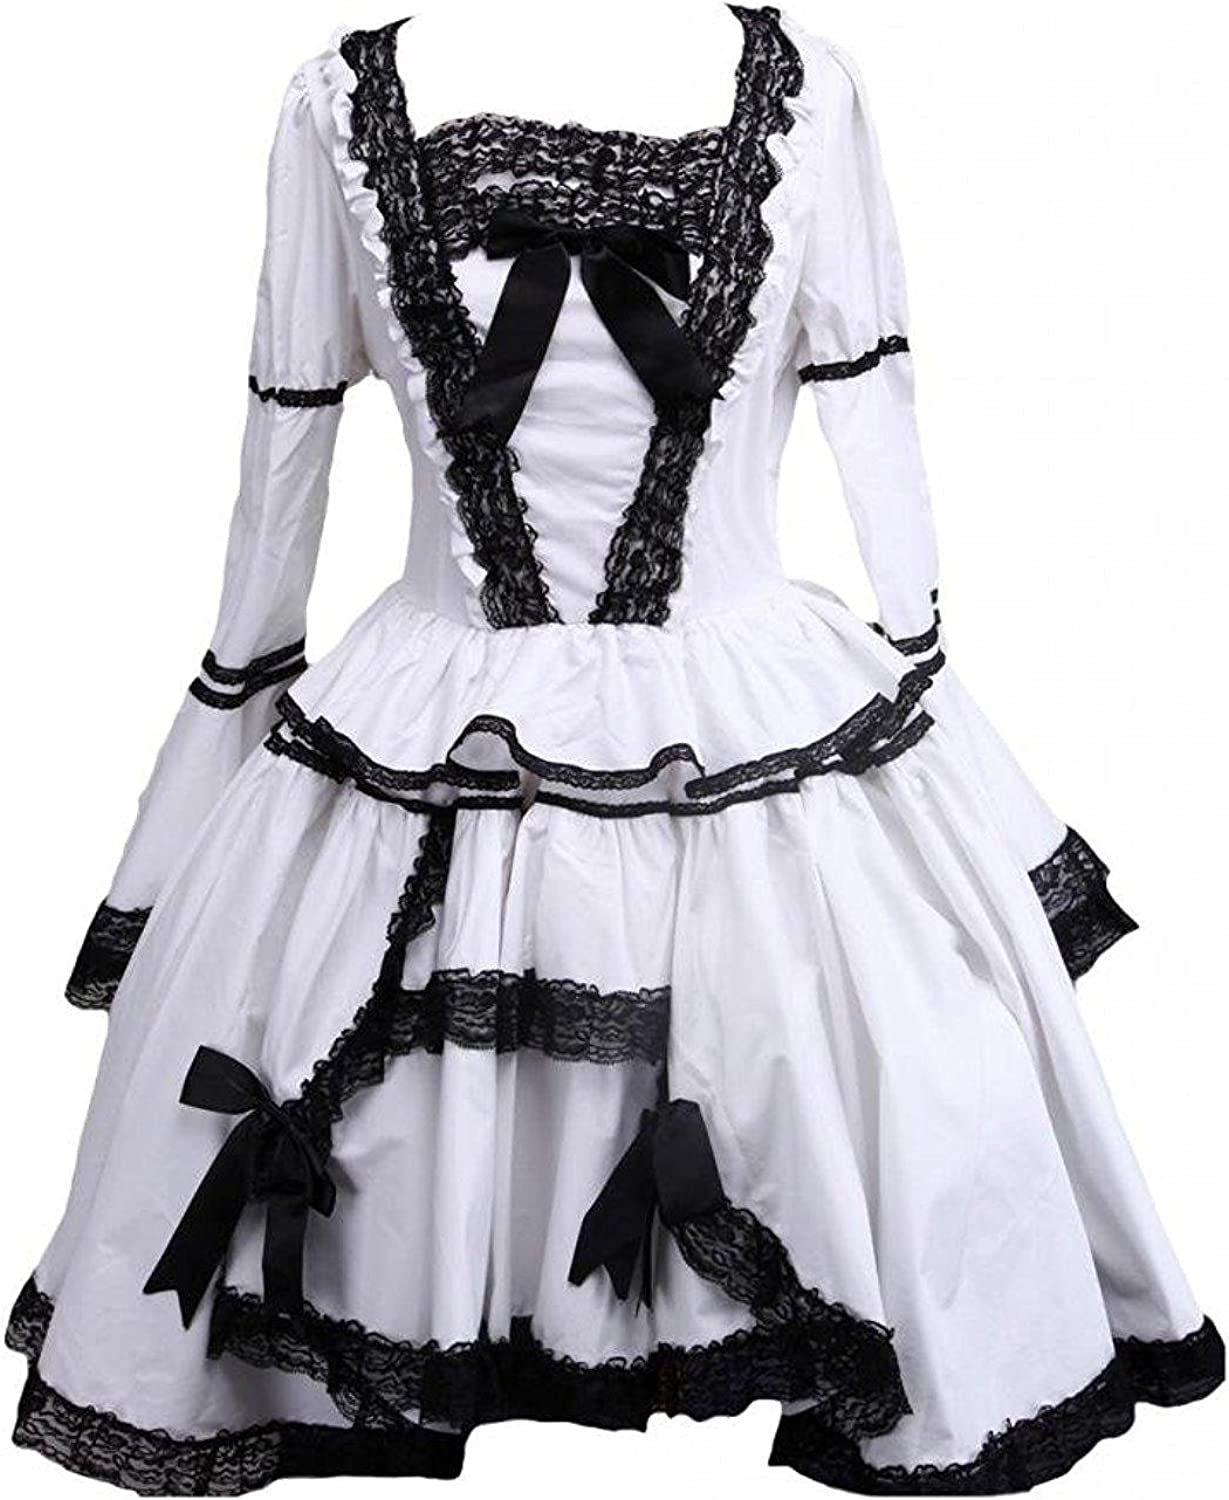 Cemavin Womens Black and White Lace Trimmed Gothic Lolita Cosplay Dress